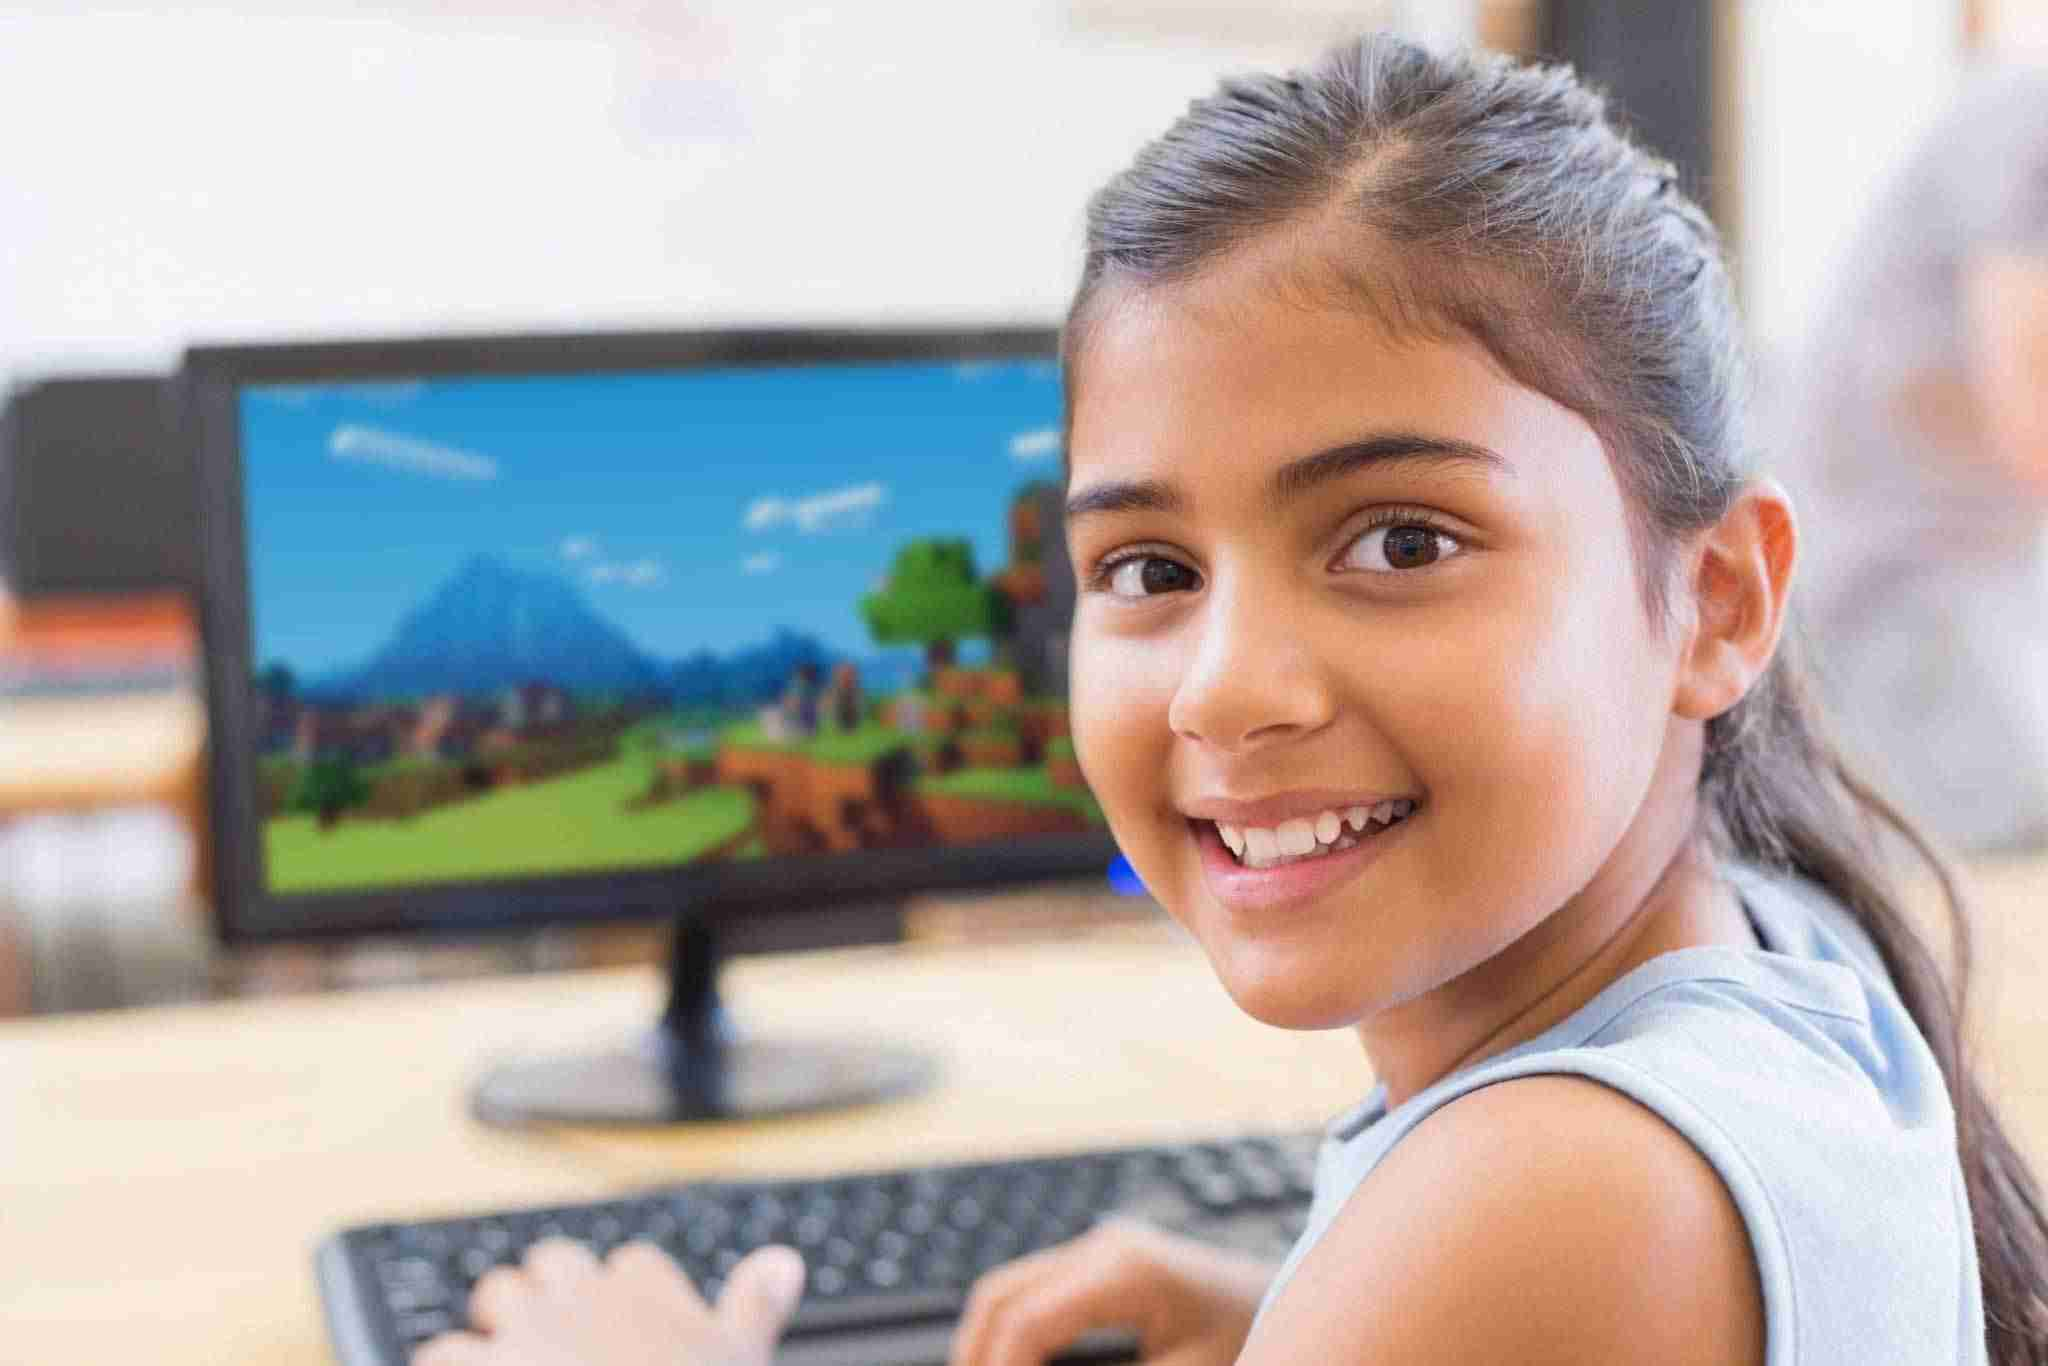 Fleming Tech Camps - Summer Camps for Kids Interested in Game Design